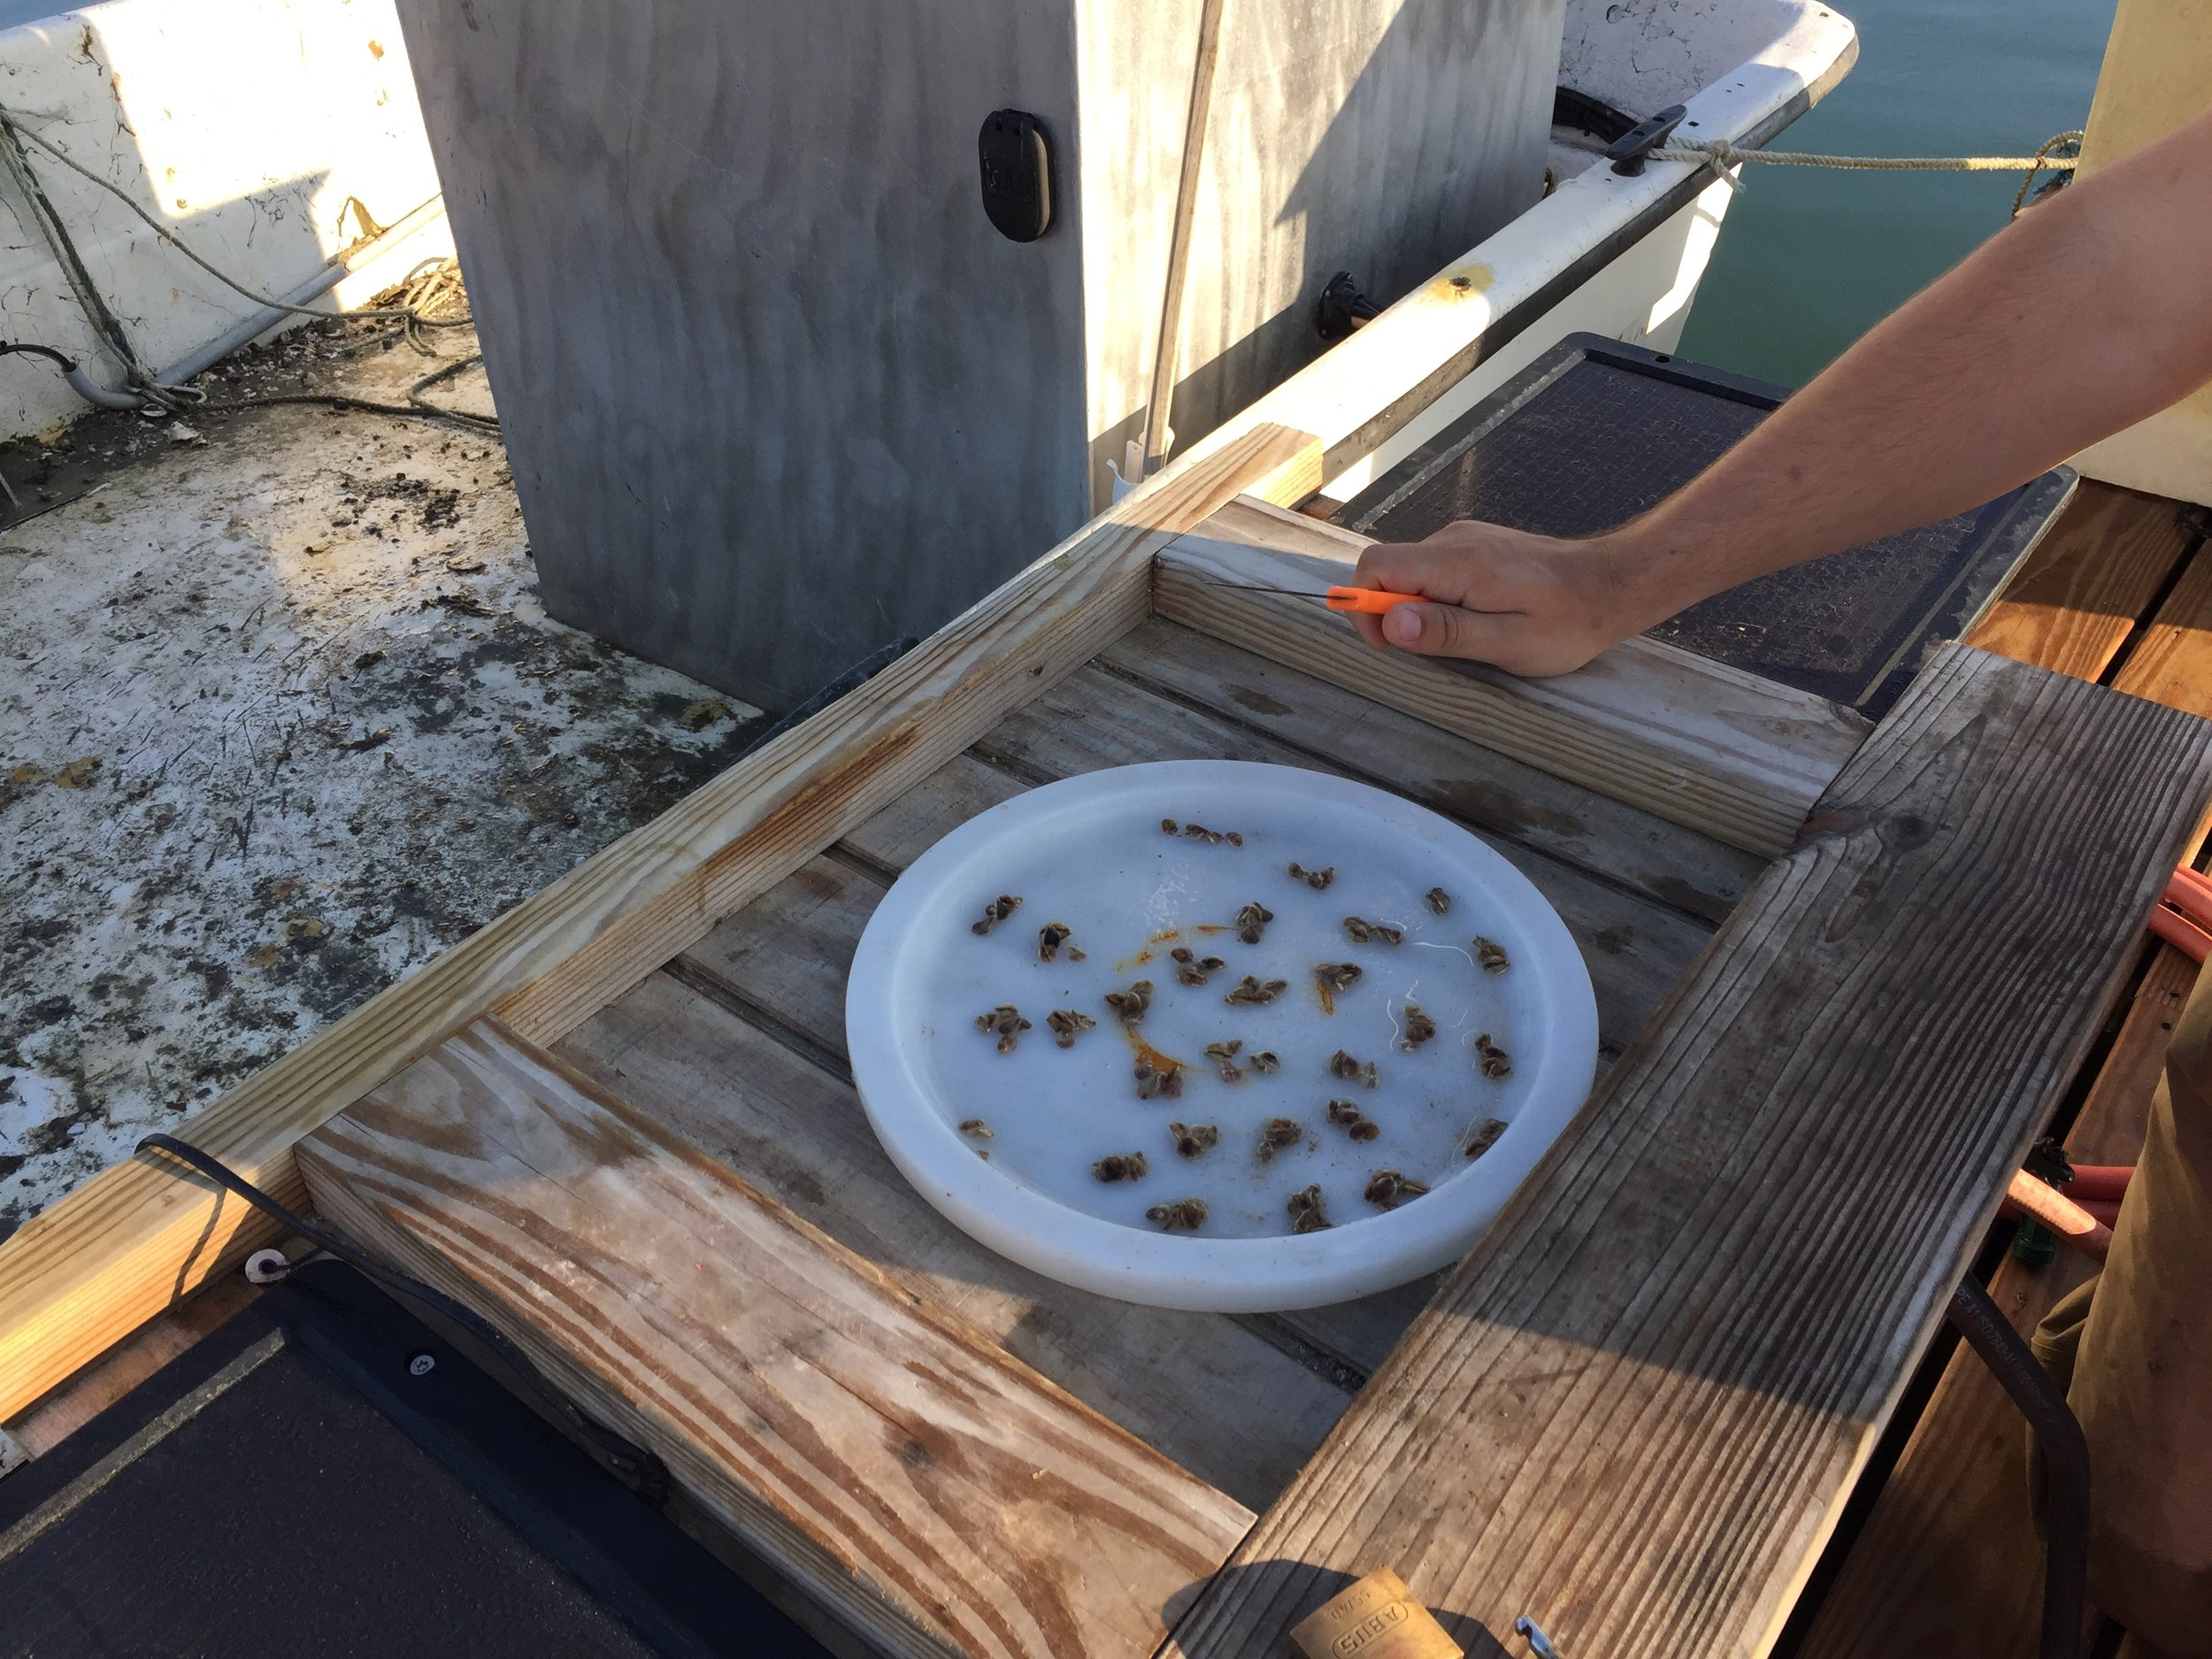 Counting seed